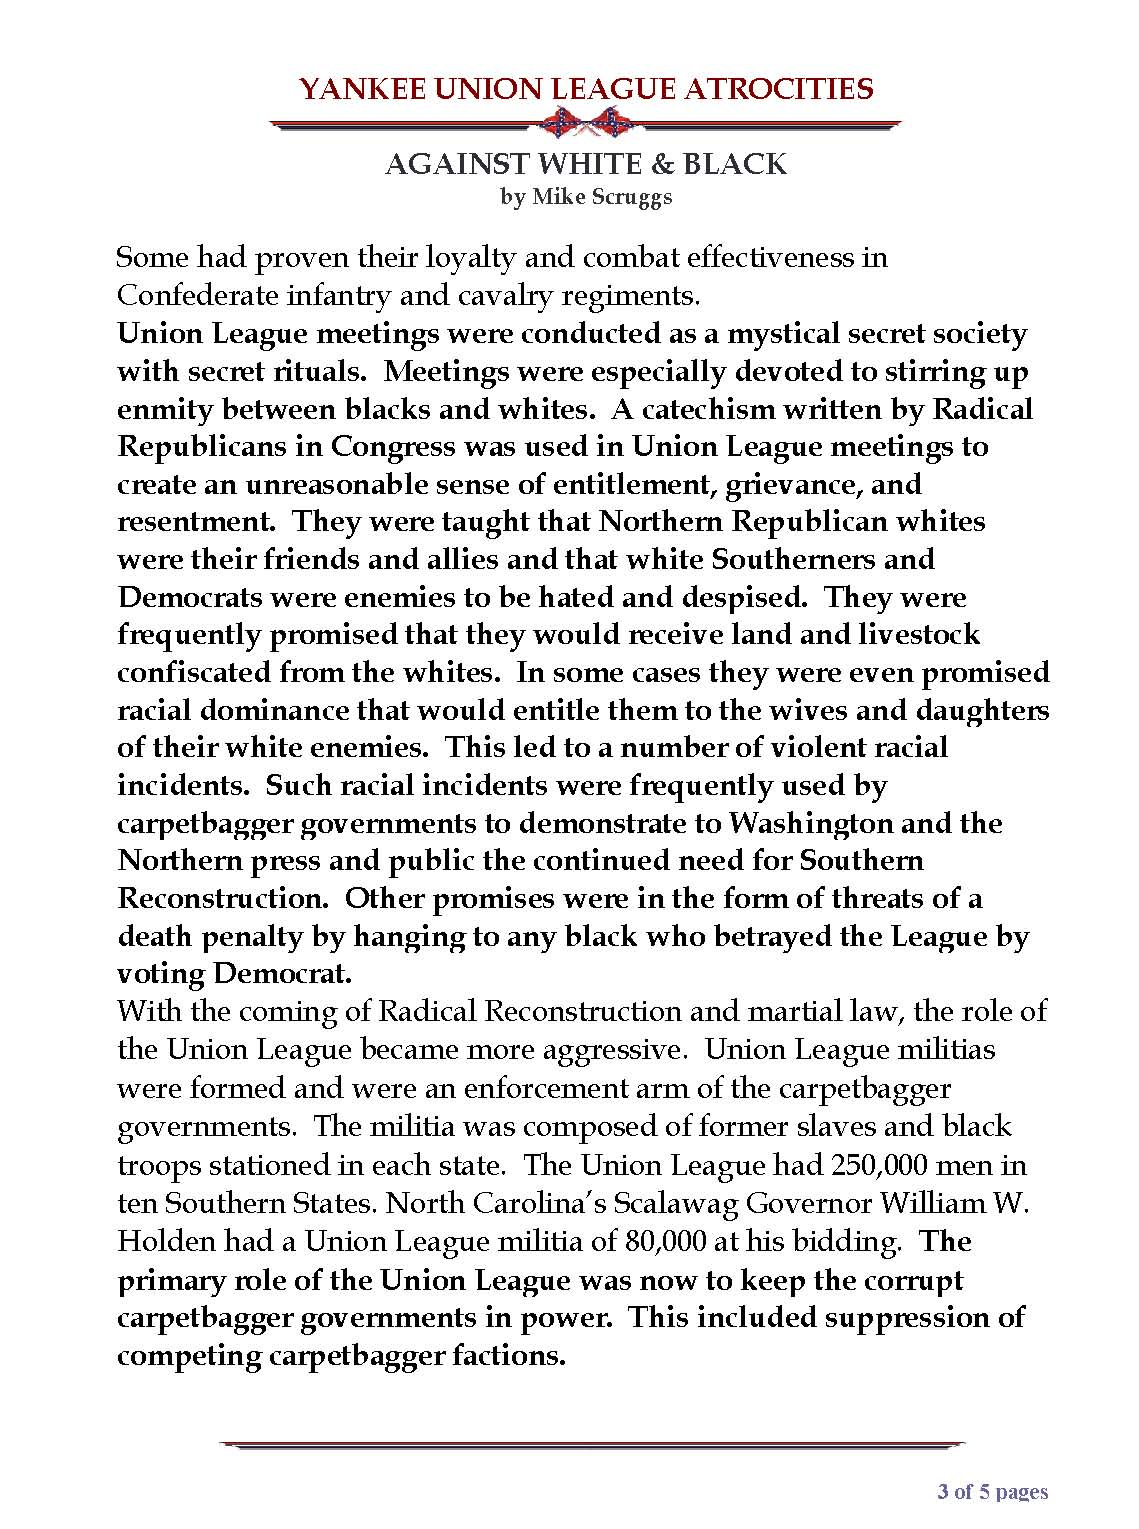 YANKEE UNION LEAGUE ATROCITIES AGAINST WHITE and BLACK_Page_3